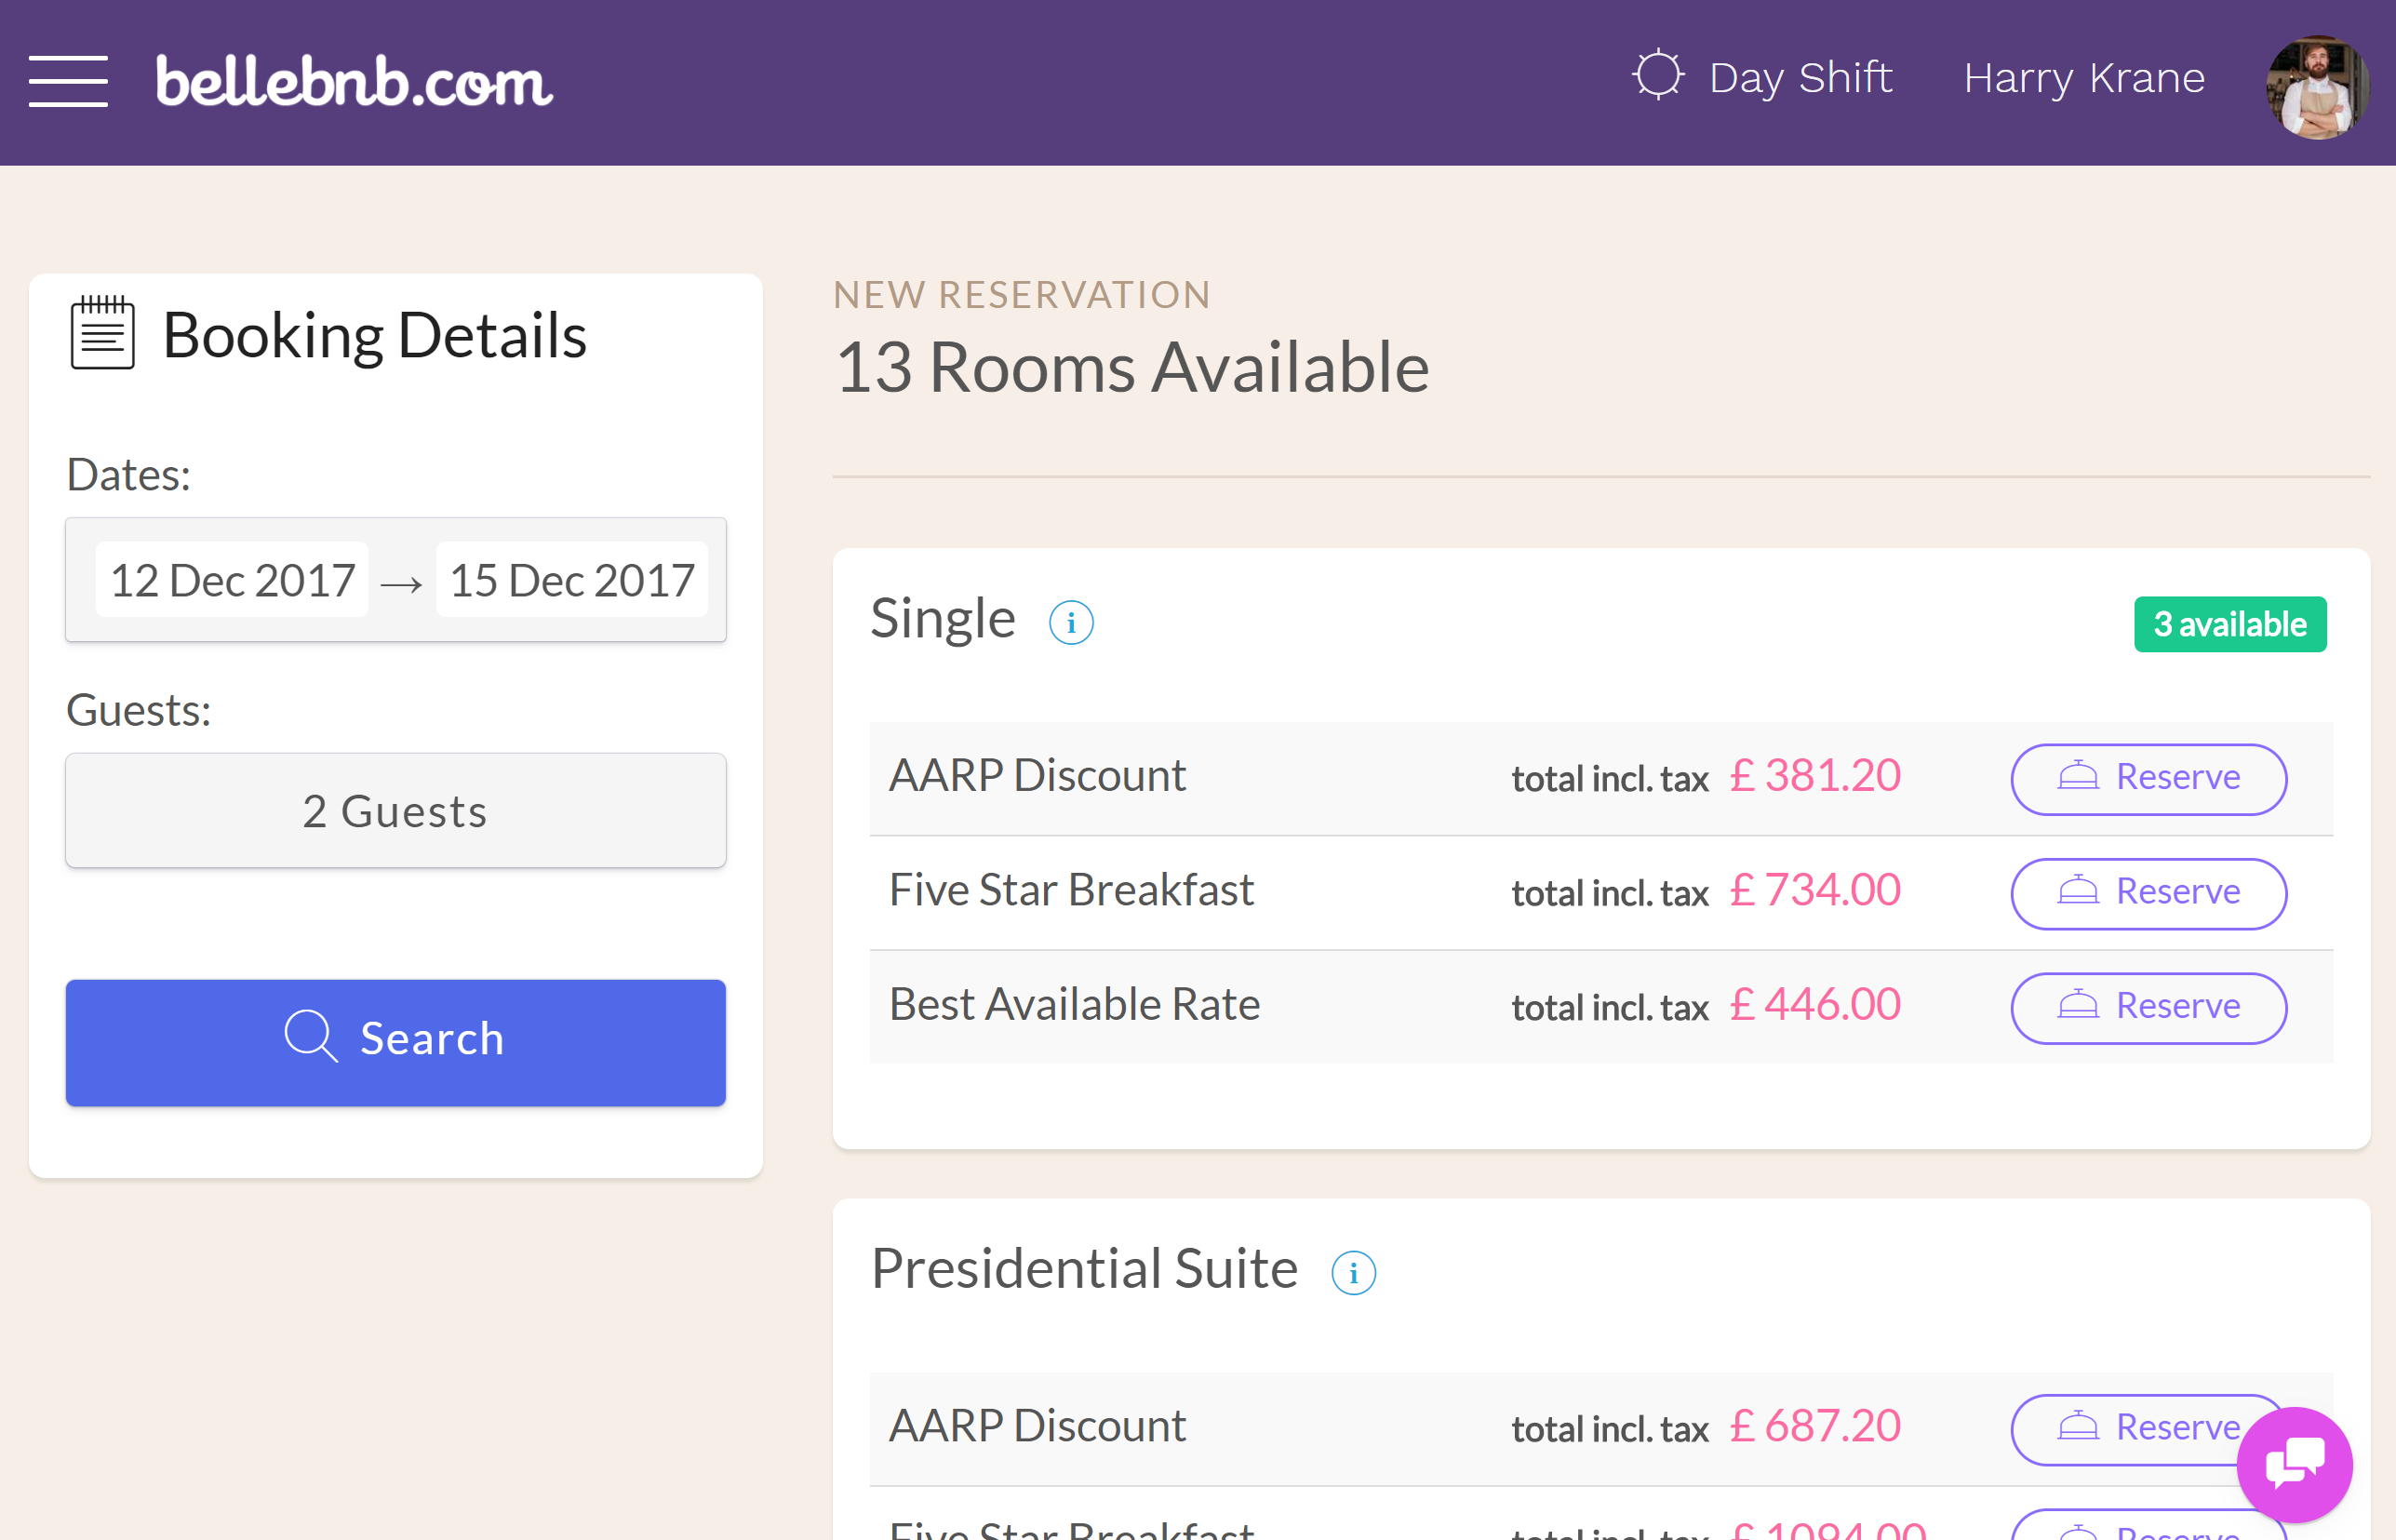 This method is very convenient because you can book an exact room, and you don't have to leave your calendar. The drawback is you only see the price for the selected room. Sometimes a guest will call in and expect several options to be offered